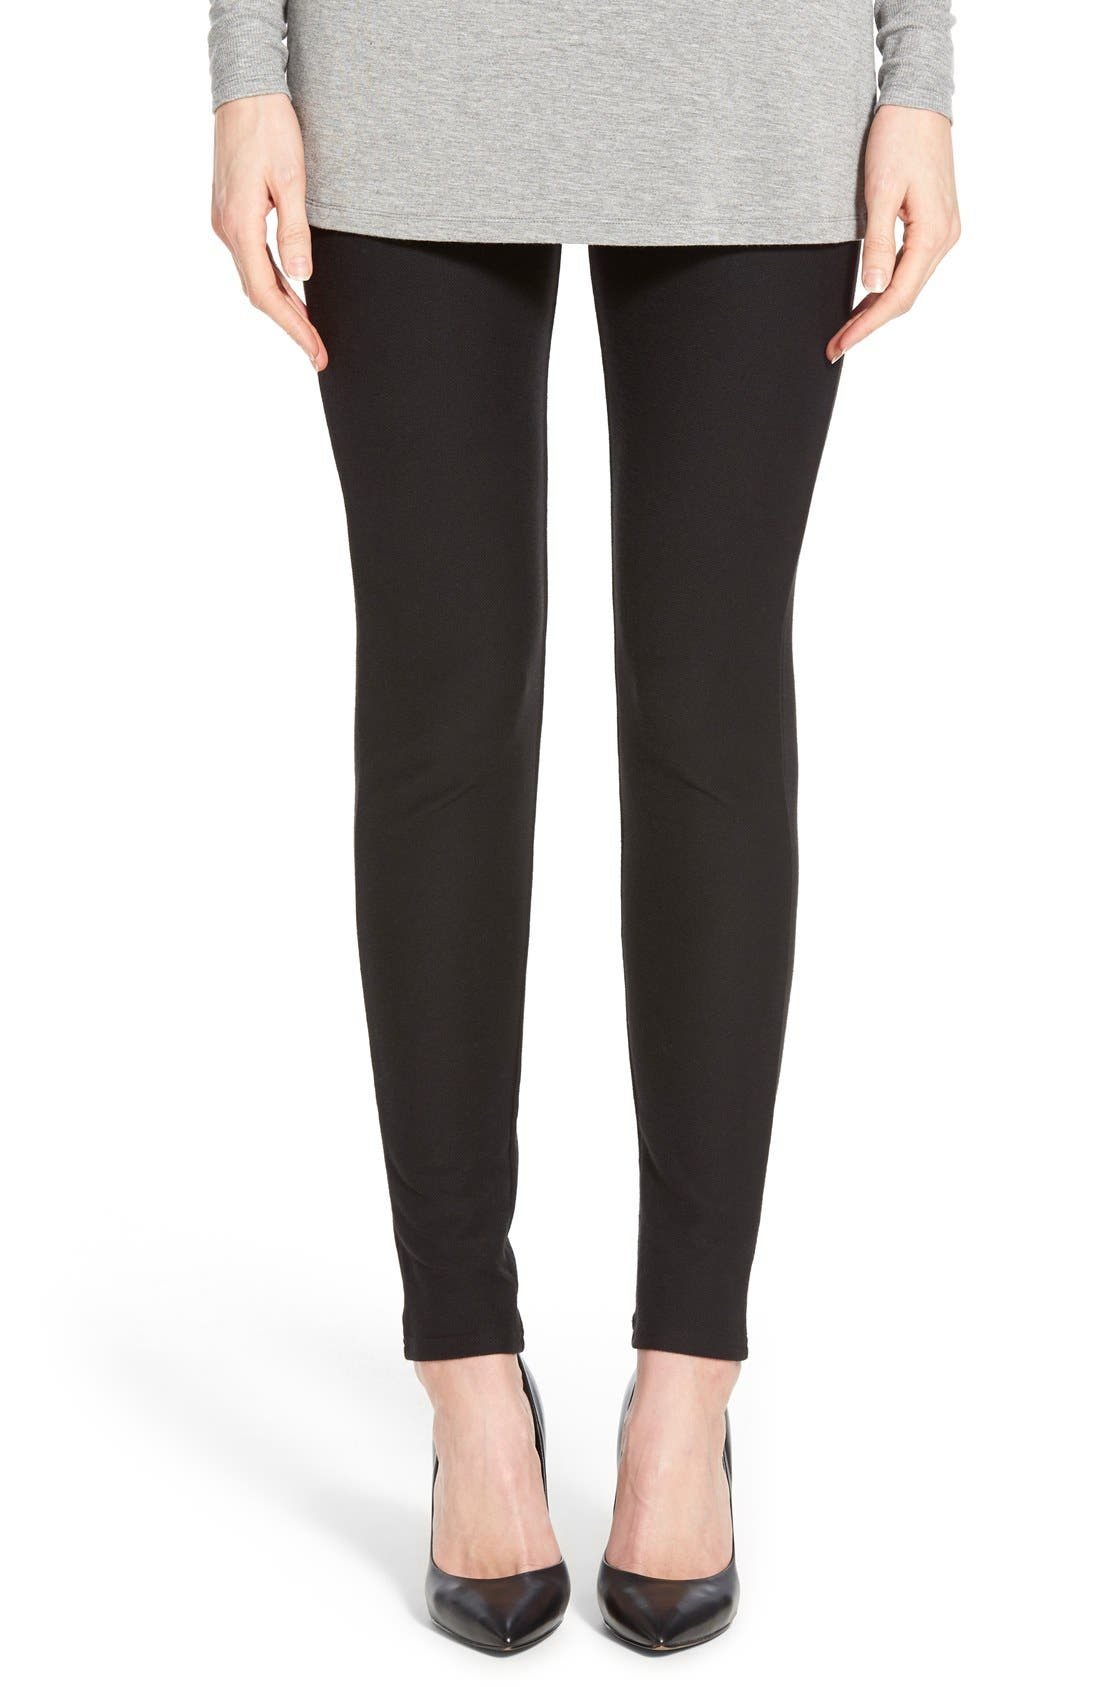 Alternate Image 1 Selected - MICHAEL Michael Kors Stretch Twill Leggings